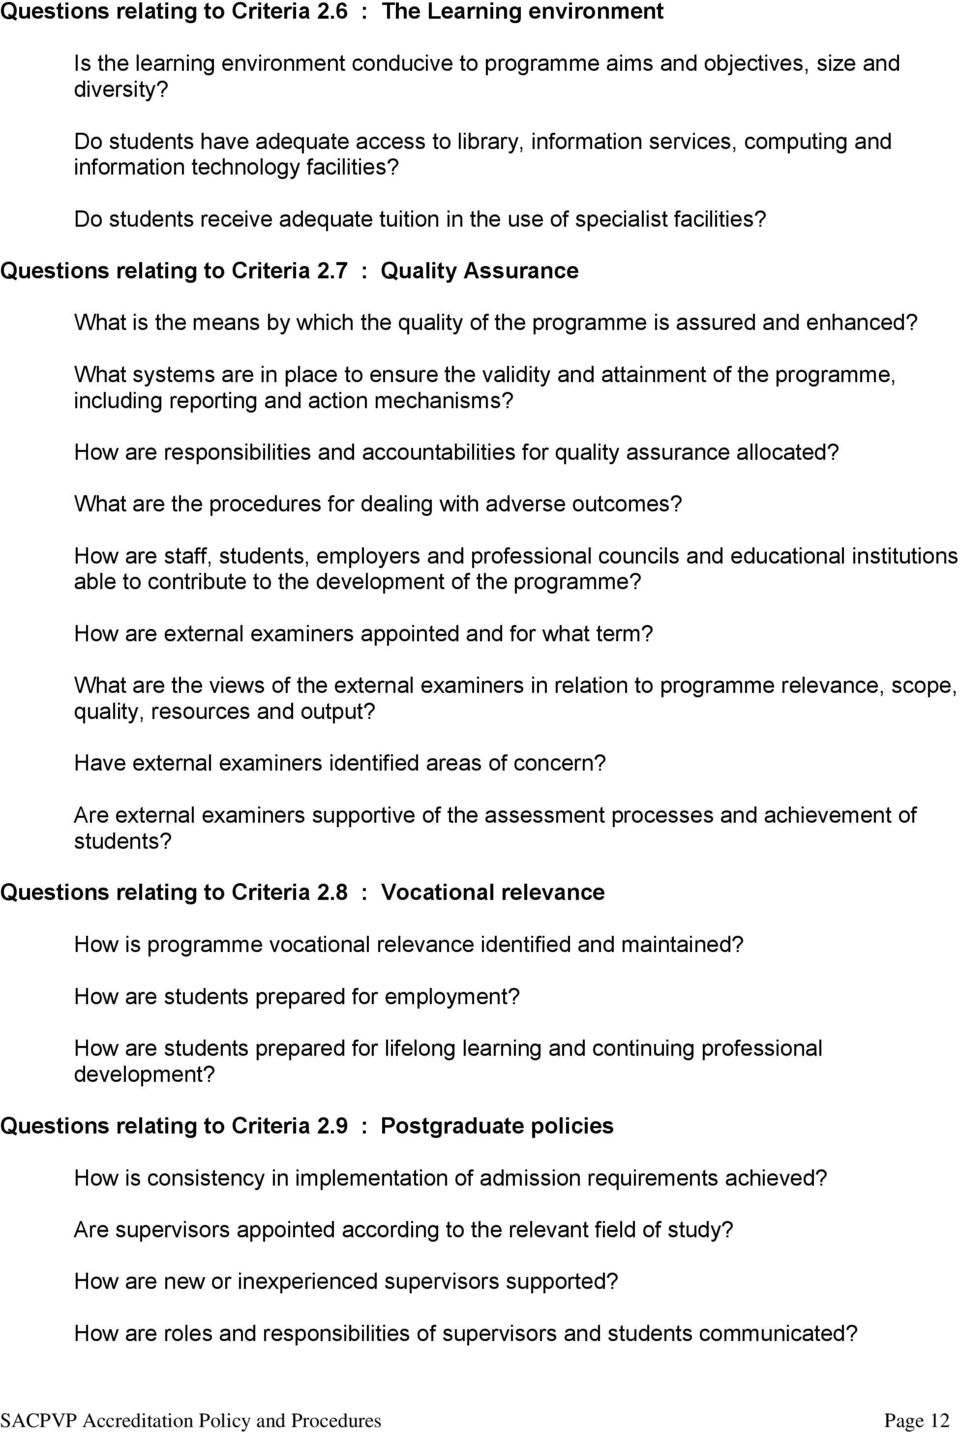 Questions relating to Criteria 2.7 : Quality Assurance What is the means by which the quality of the programme is assured and enhanced?